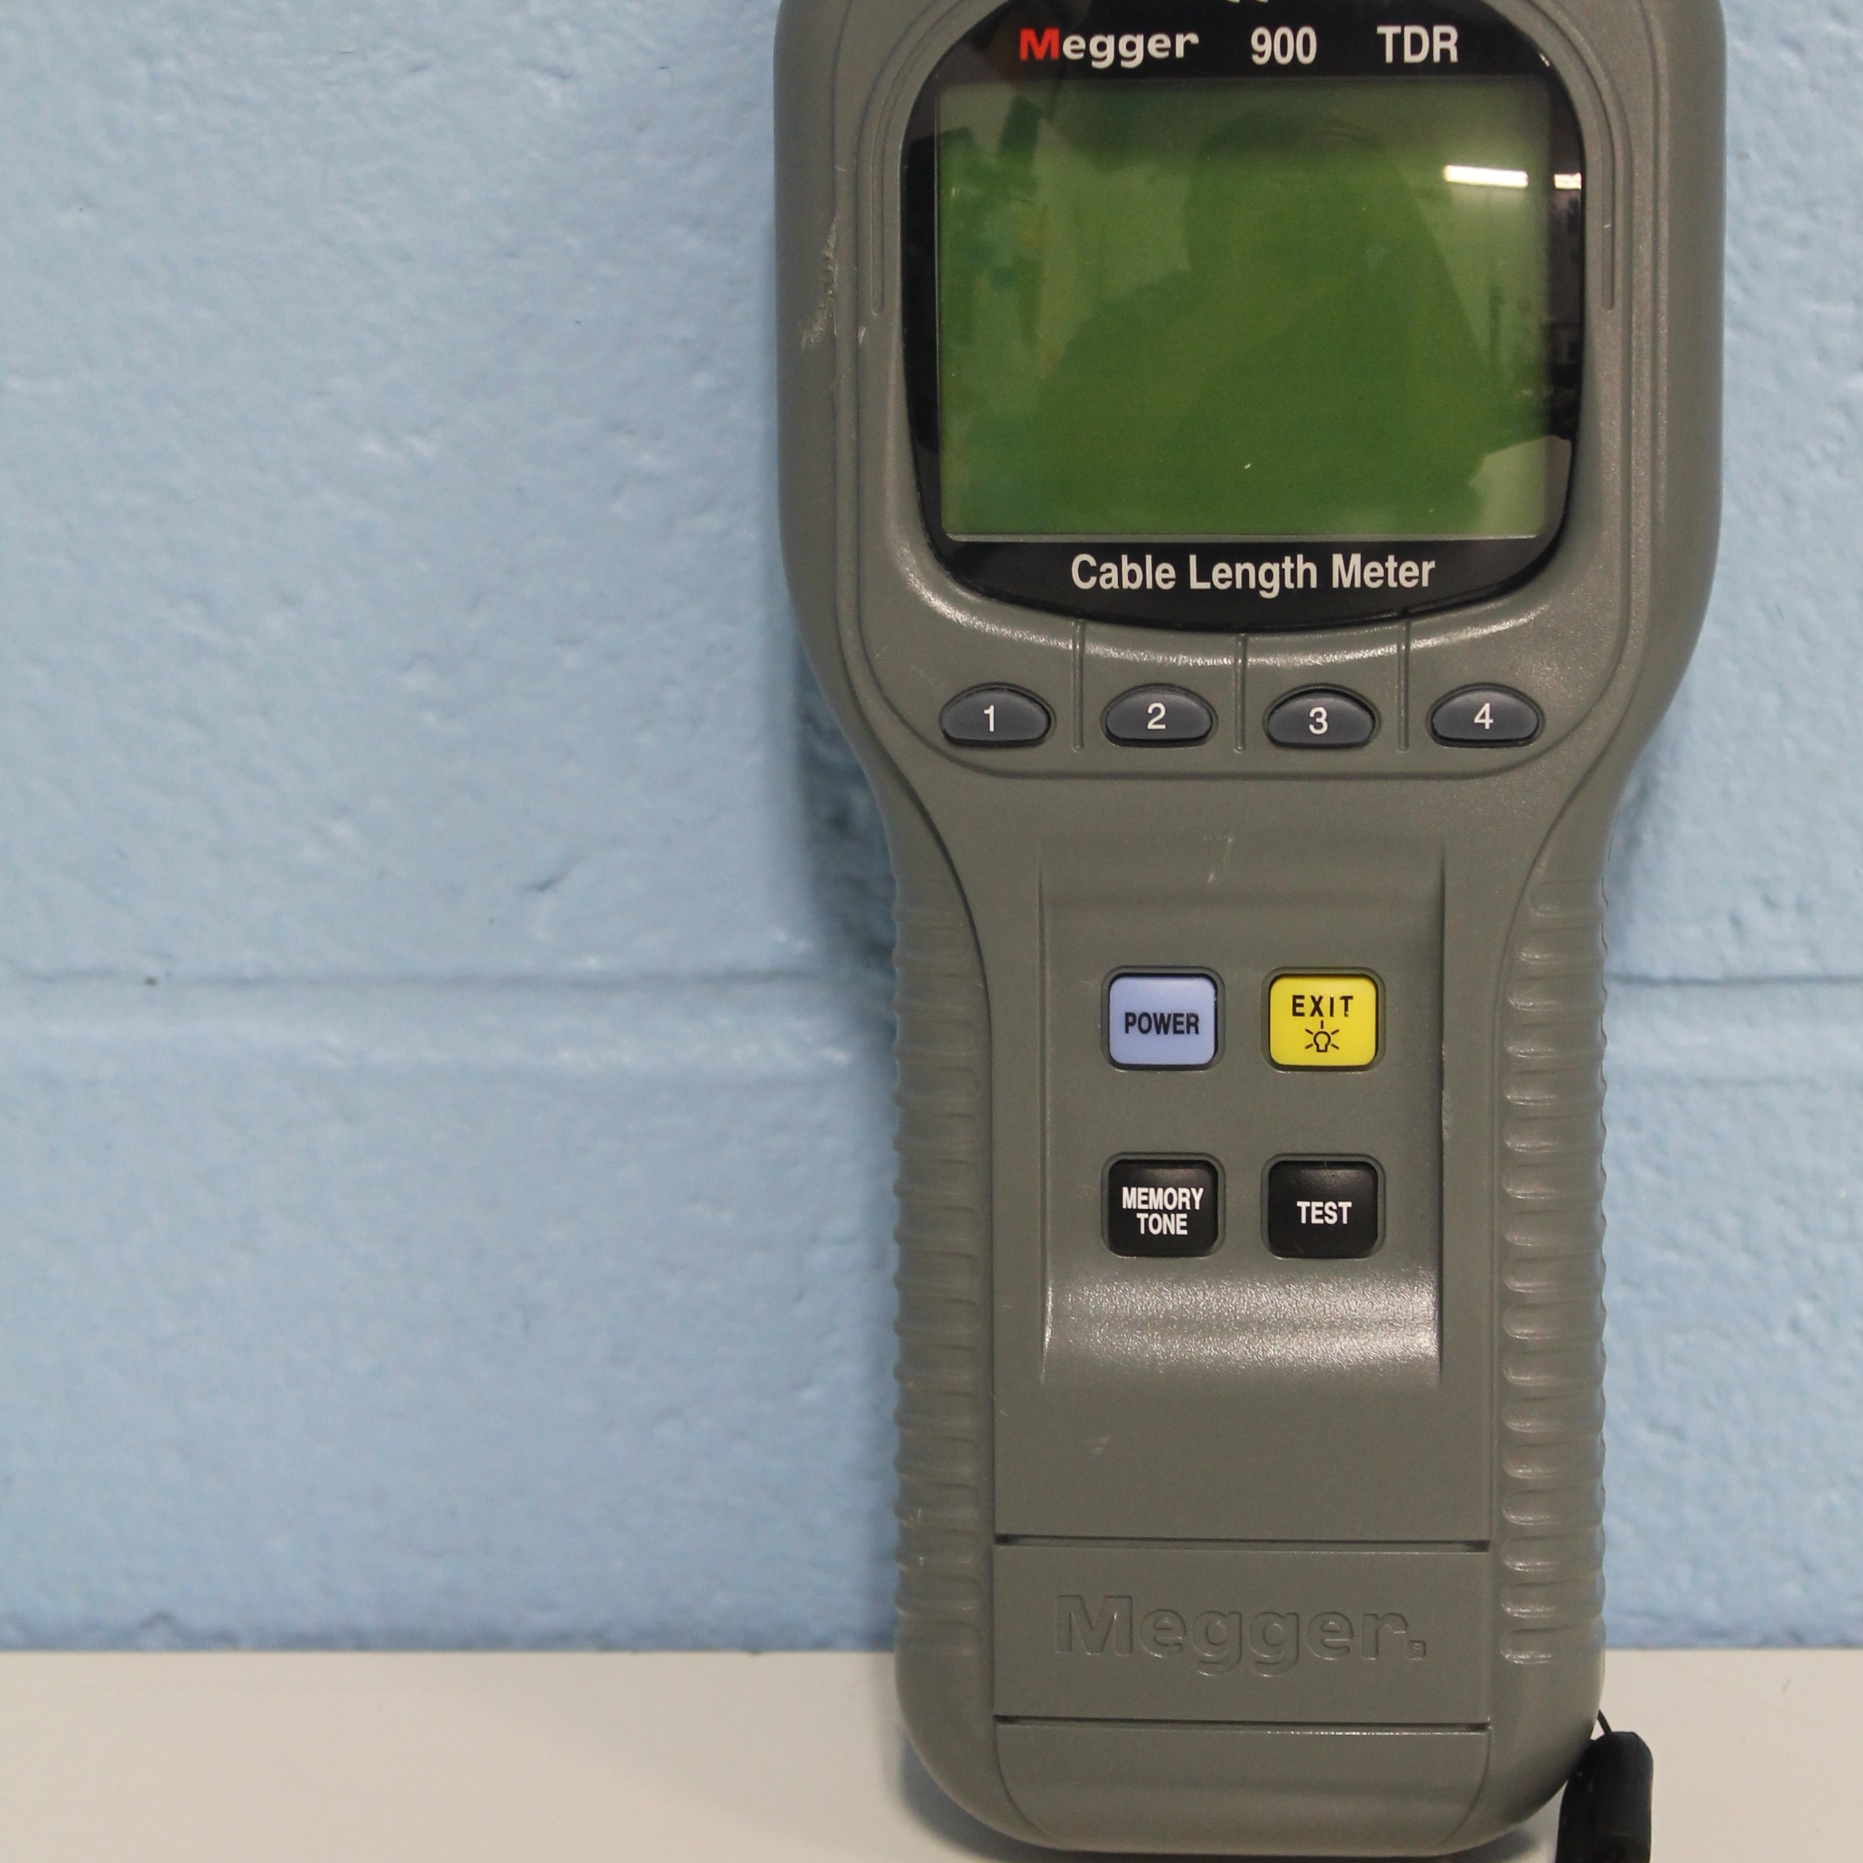 Megger TDR900 Time Domain Reflectometer and Cable Length Meter Image